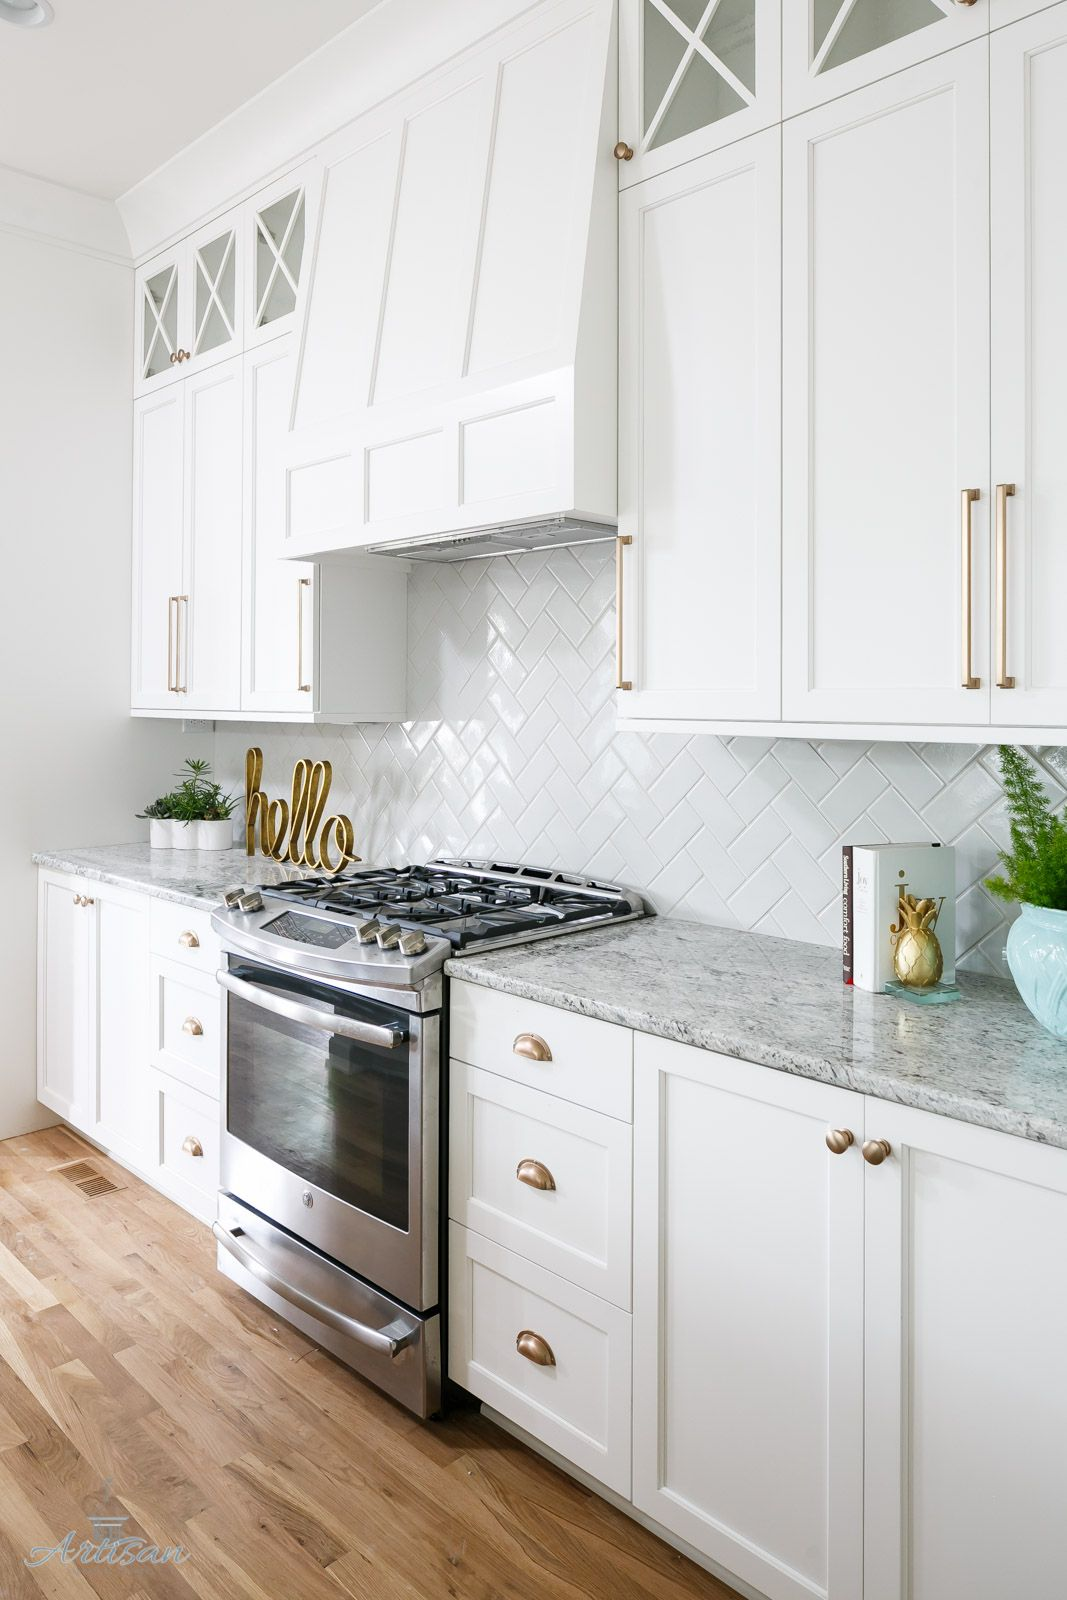 White Kitchen Design With Marble Countertops And Gold Accents Artisan Signature Homes Kitchen Cabinet Design Kitchen Design Kitchen Remodel